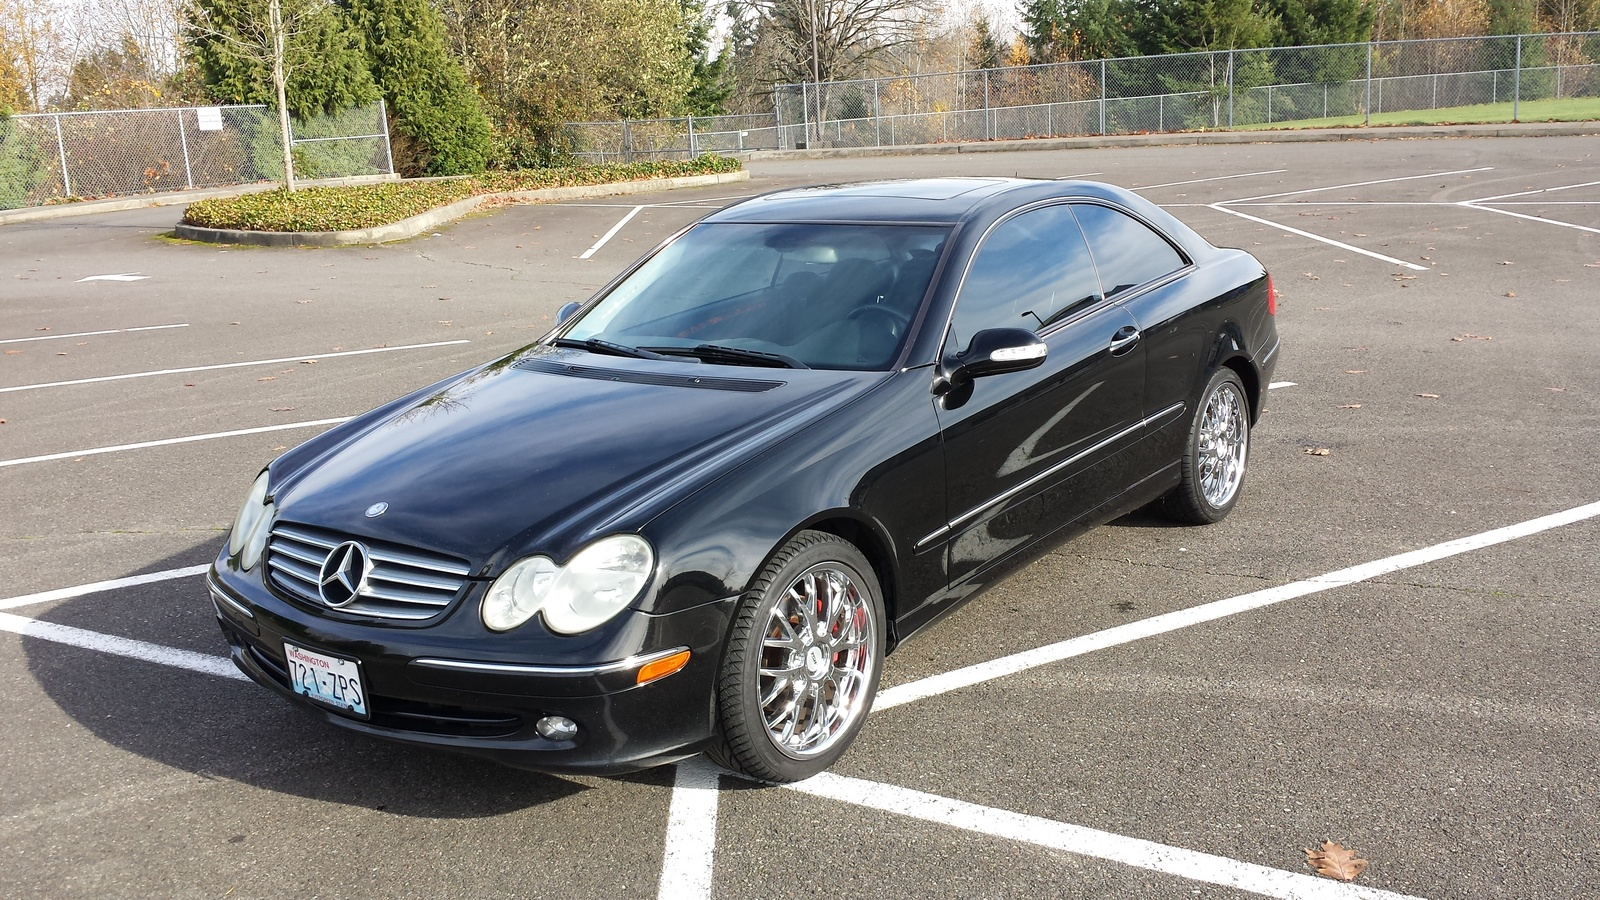 2002 Mercedes Benz CLK Class Pictures C6138 besides Les Symptomes De Larbre Cames Capteur also Interior 38485879 together with Wallpaper 02 together with Dashboard. on 2000 mercedes clk320 coupe